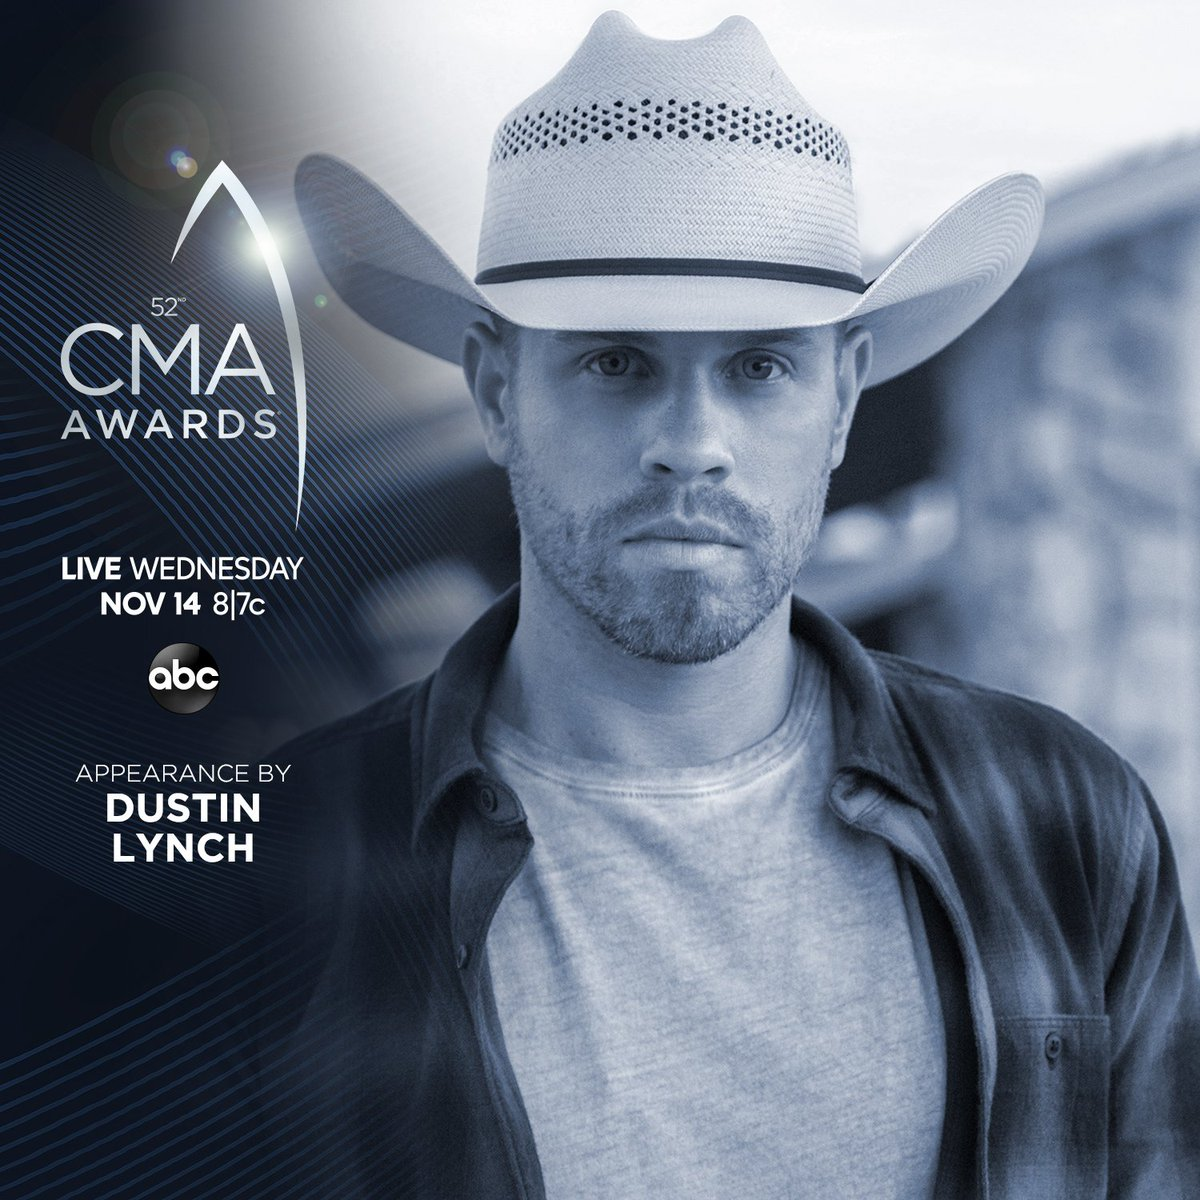 RT @dustinlynch: It's Country Music's BIGGEST Night! I'm presenting at the #CMAawards this Wednesday at 8|7c on ABC! https://t.co/dIJxgcIB02